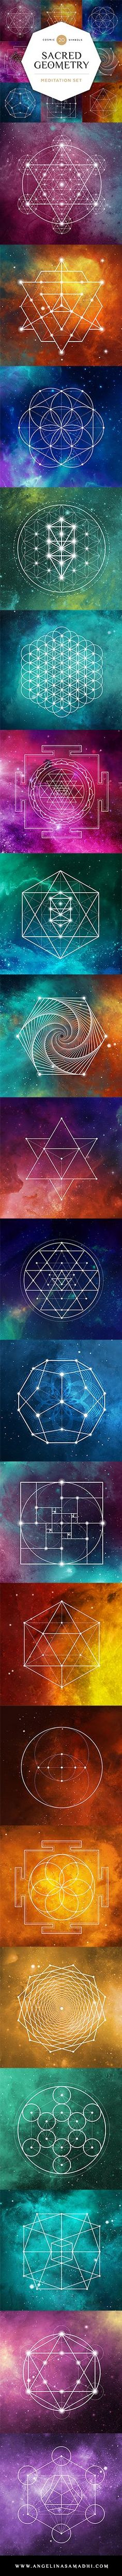 Stunning images! Use these!Studies have shown that meditating on sacred geometry can help strengthen the connection between the right & left hemispheres of the brain and remind you of your own infinite nature. https://www.angelina-samadhi.com/shop/sacred-geometry-meditation-set-1